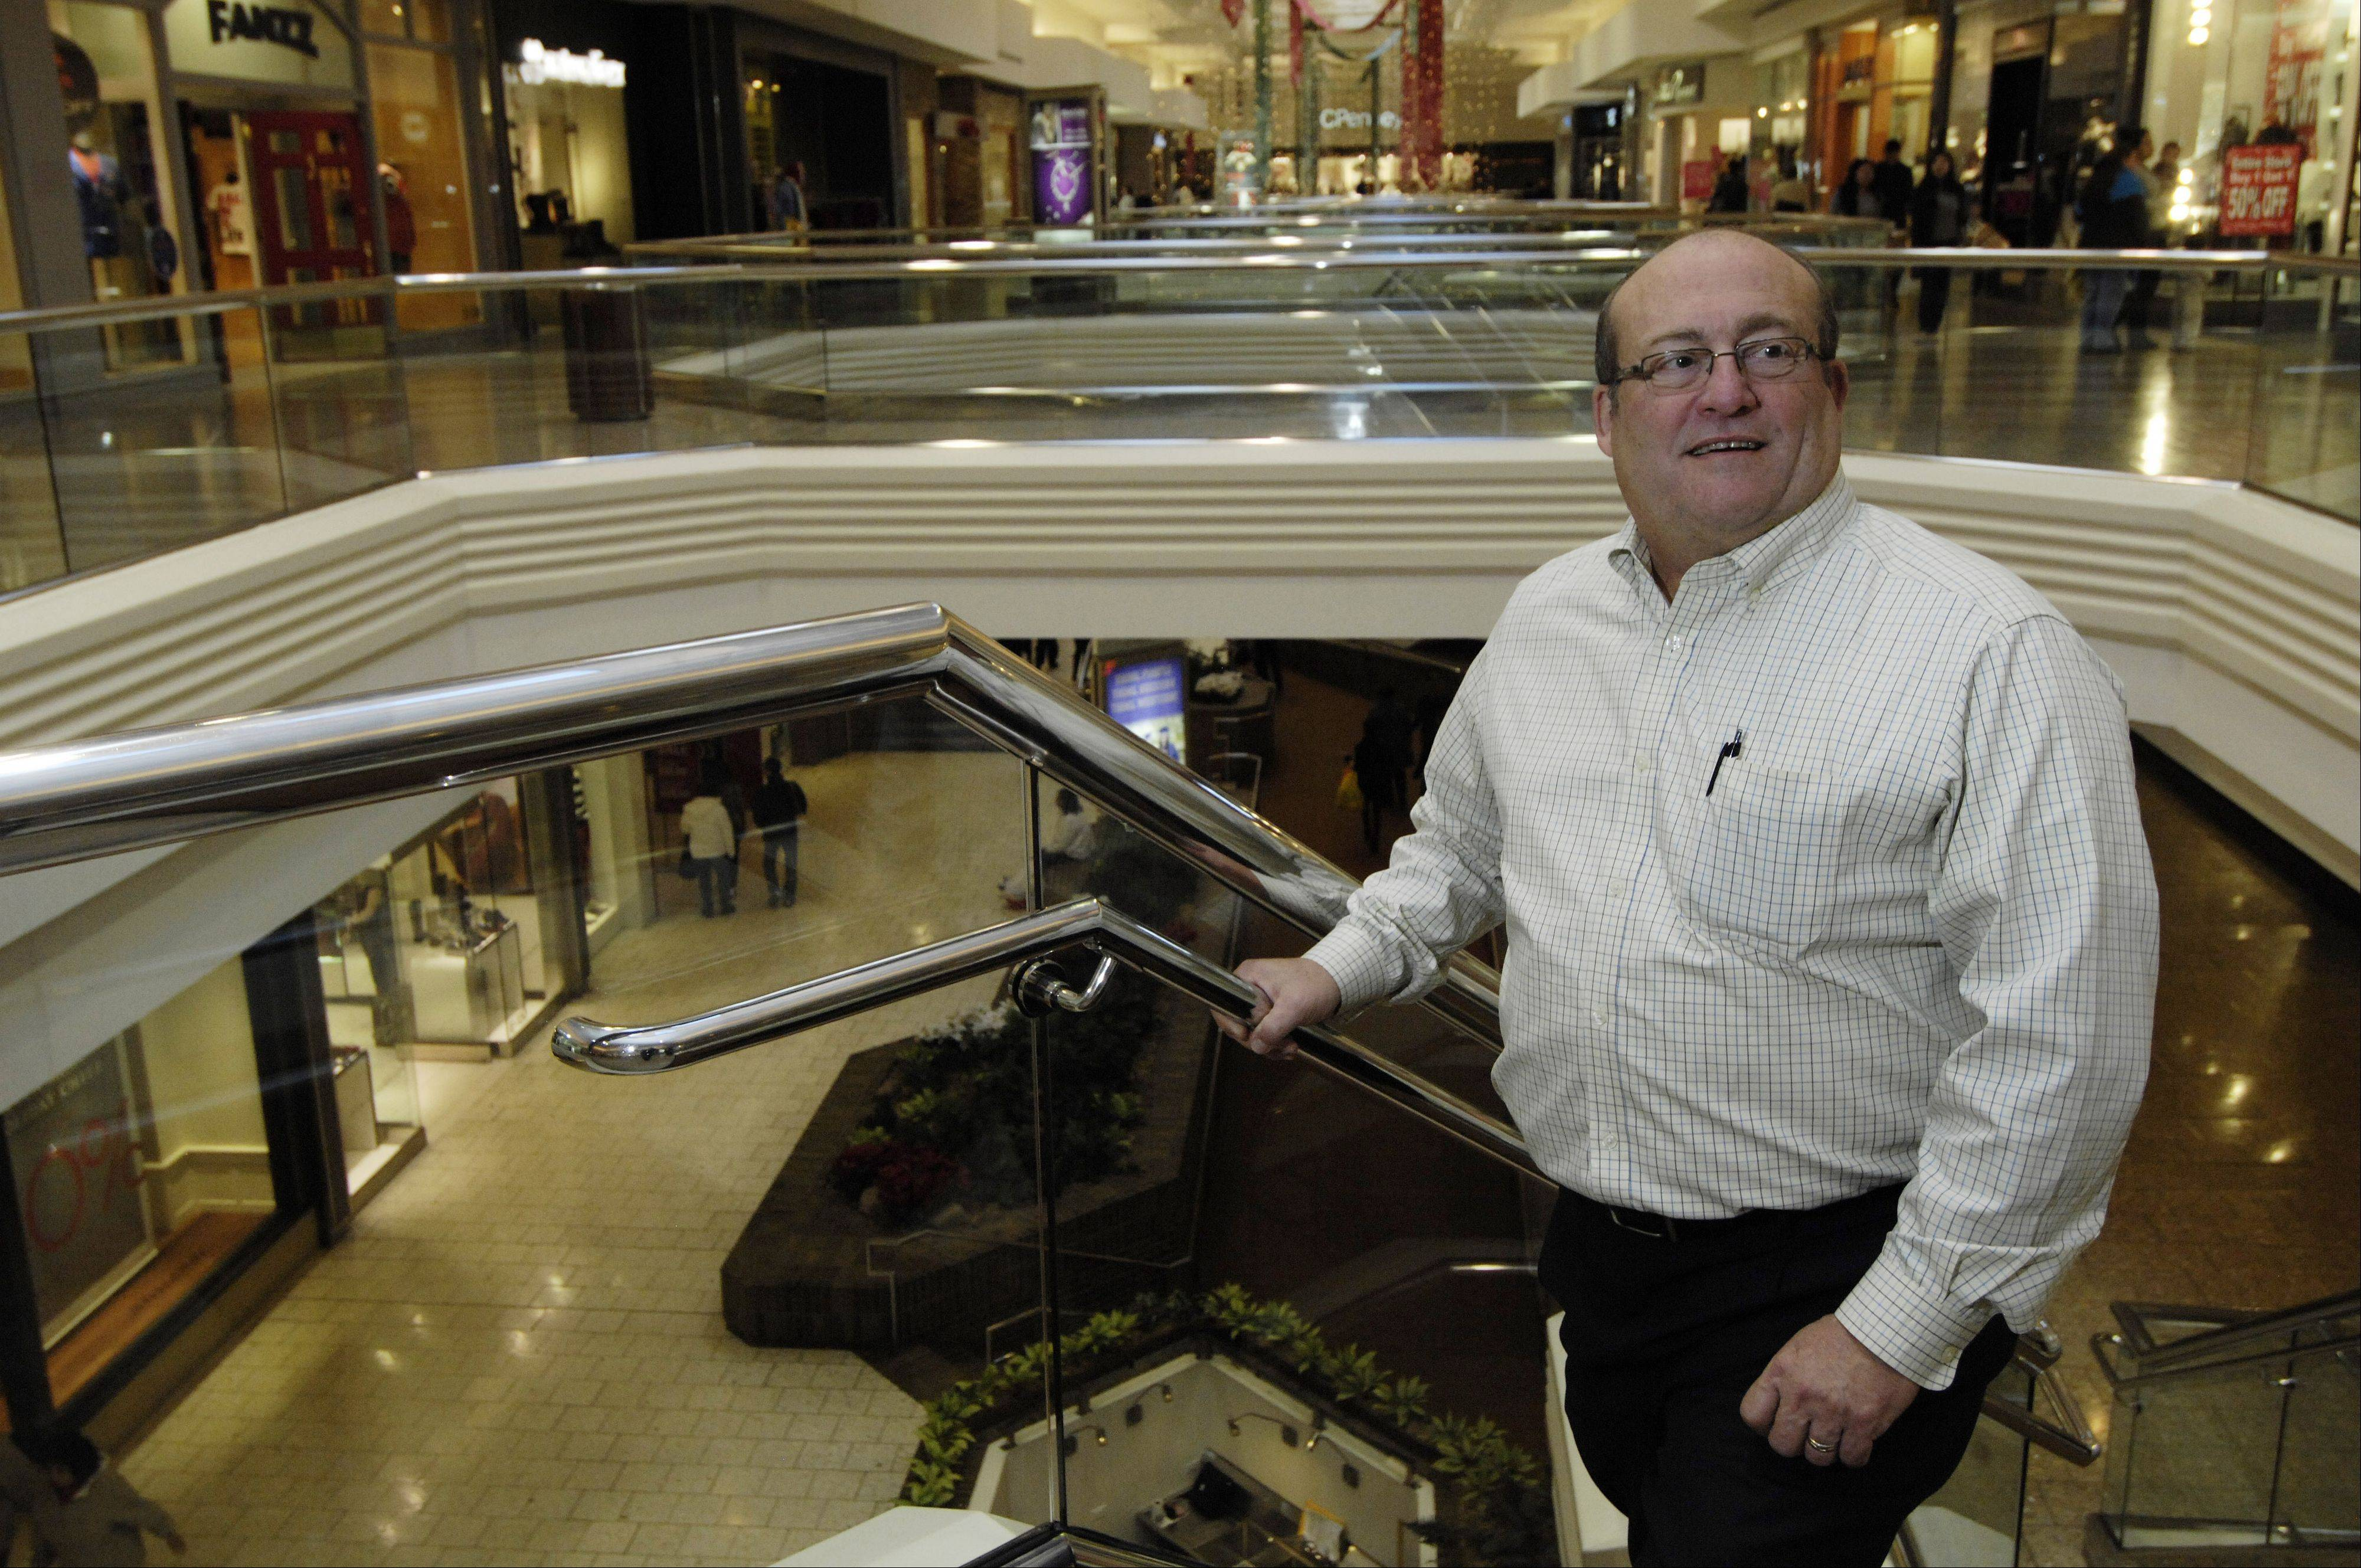 After 12 holiday shopping seasons as general manager of Woodfield Mall in Schaumburg, Marc Strich will be transferring in January to another Taubman Co. mall in Palm Beach, Fla. His move is a result of an ownership and management change at the mall.